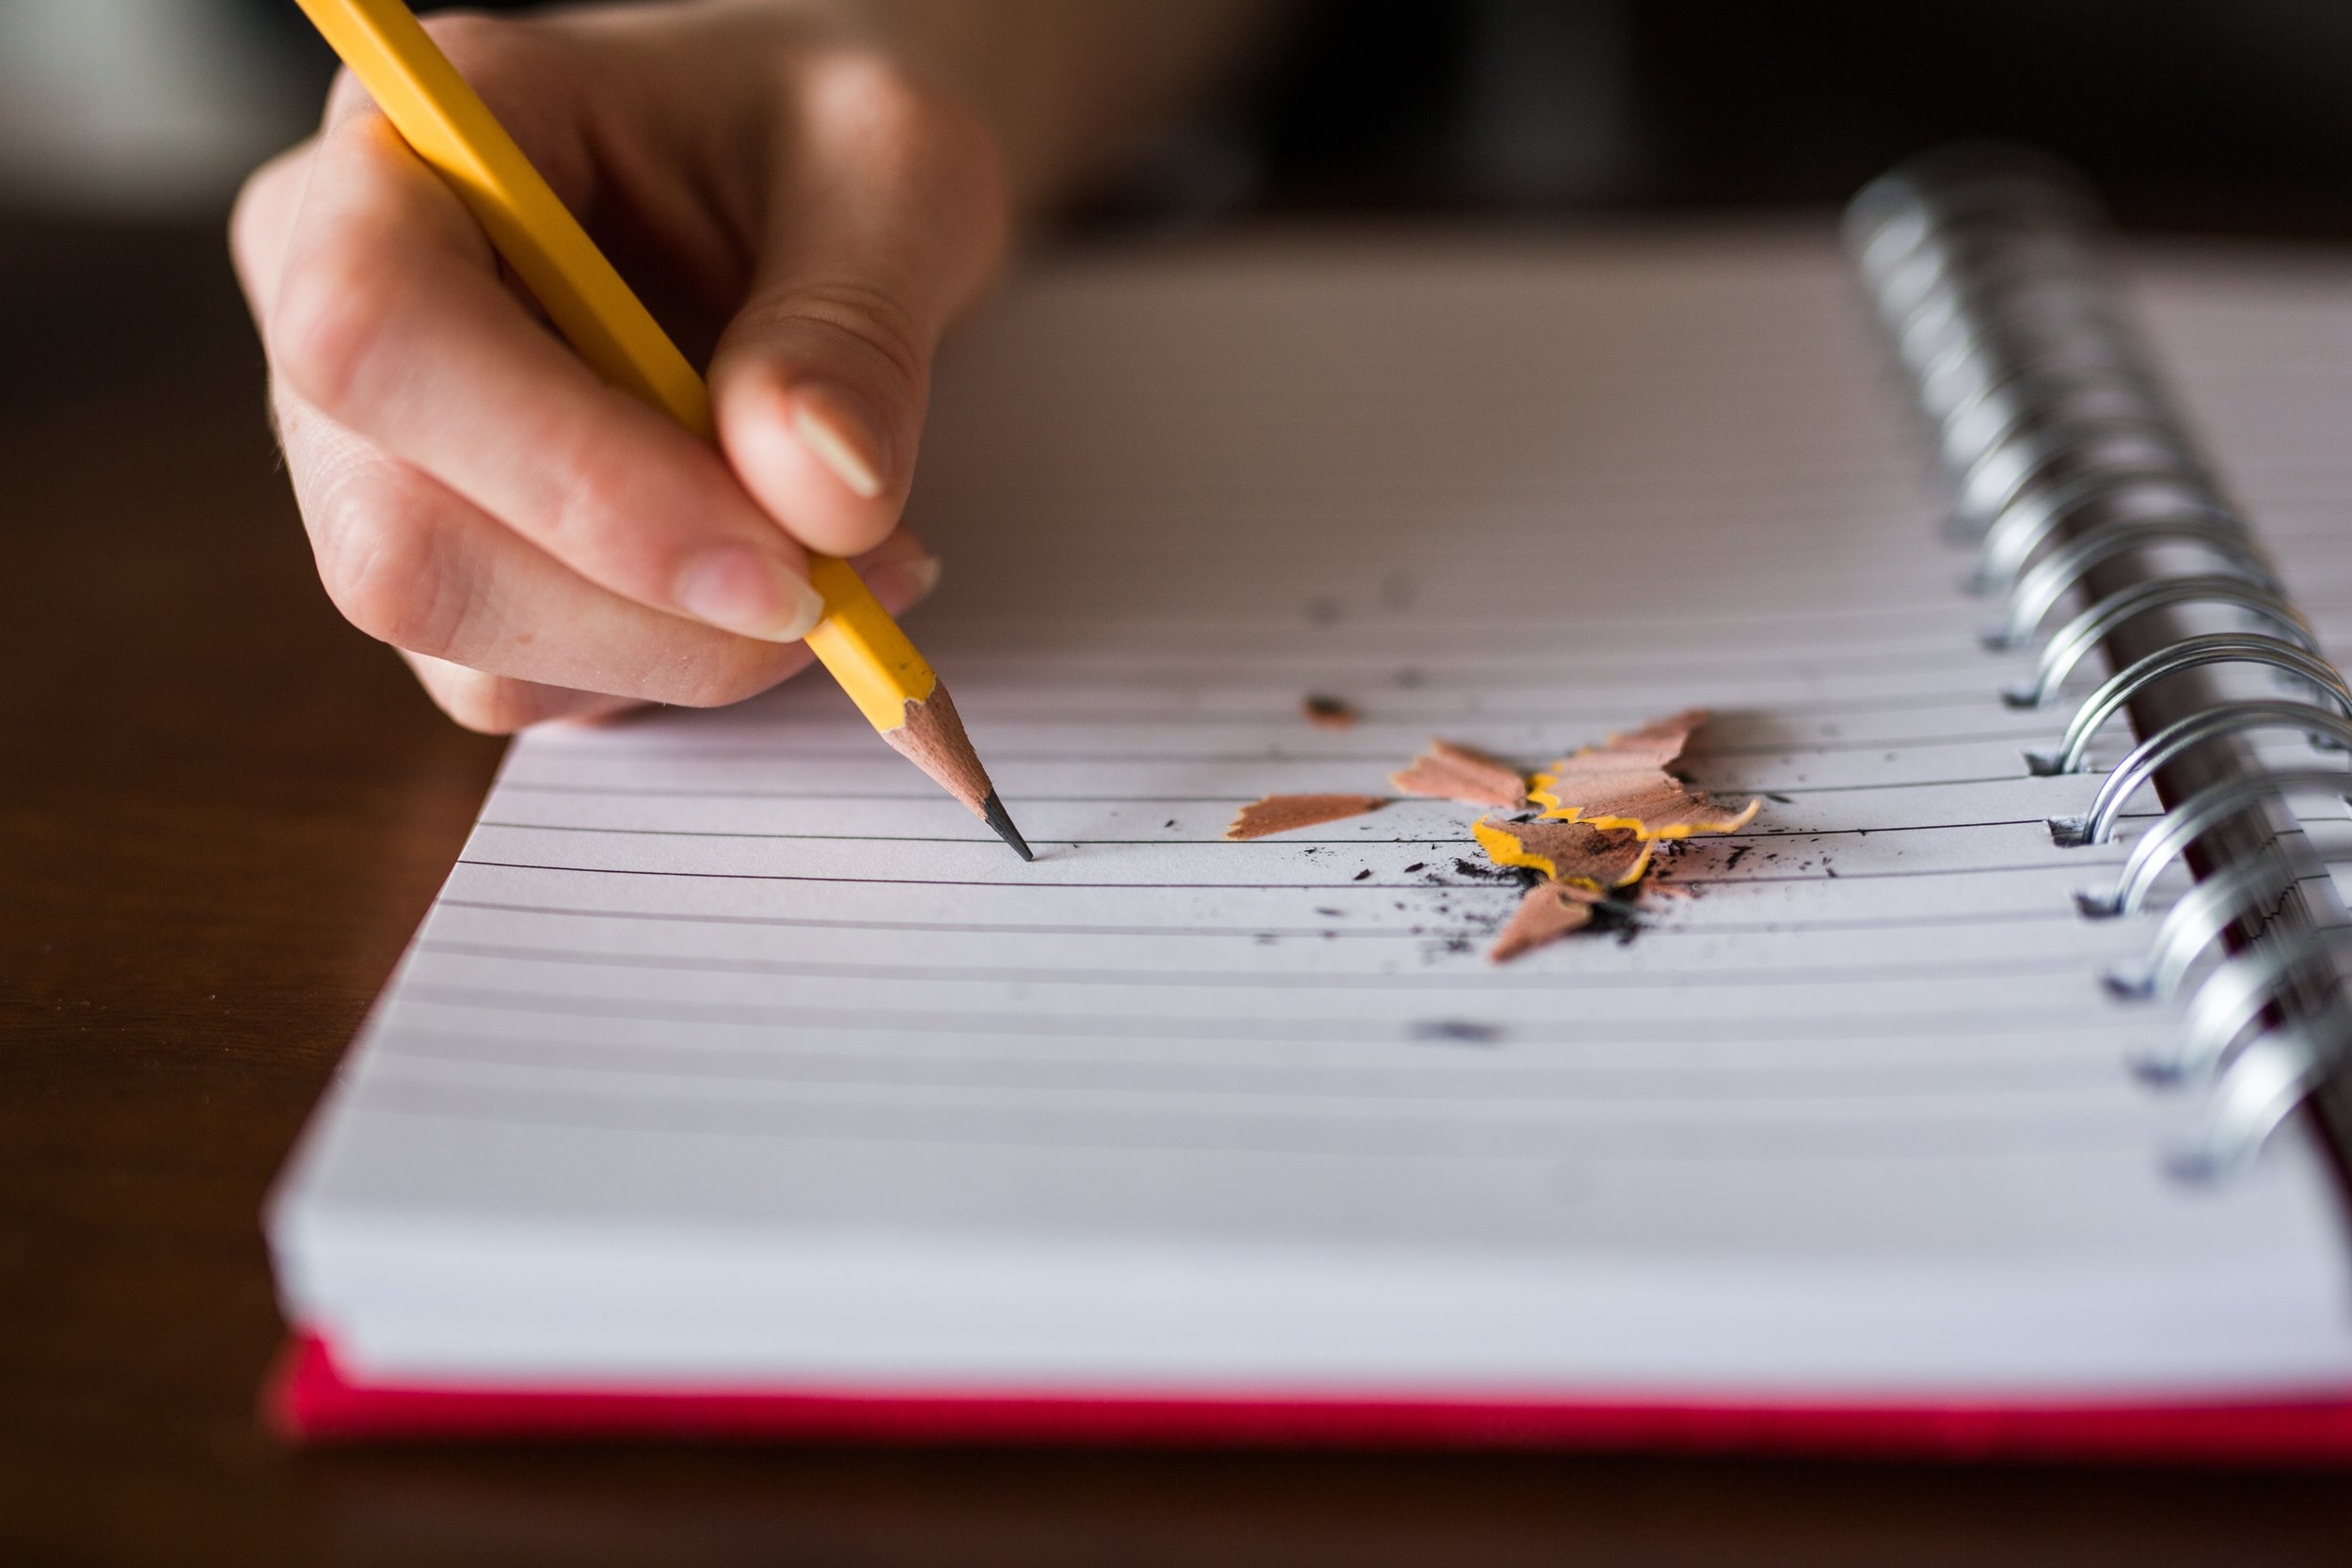 Image of a woman writing with a pencil in a notebook